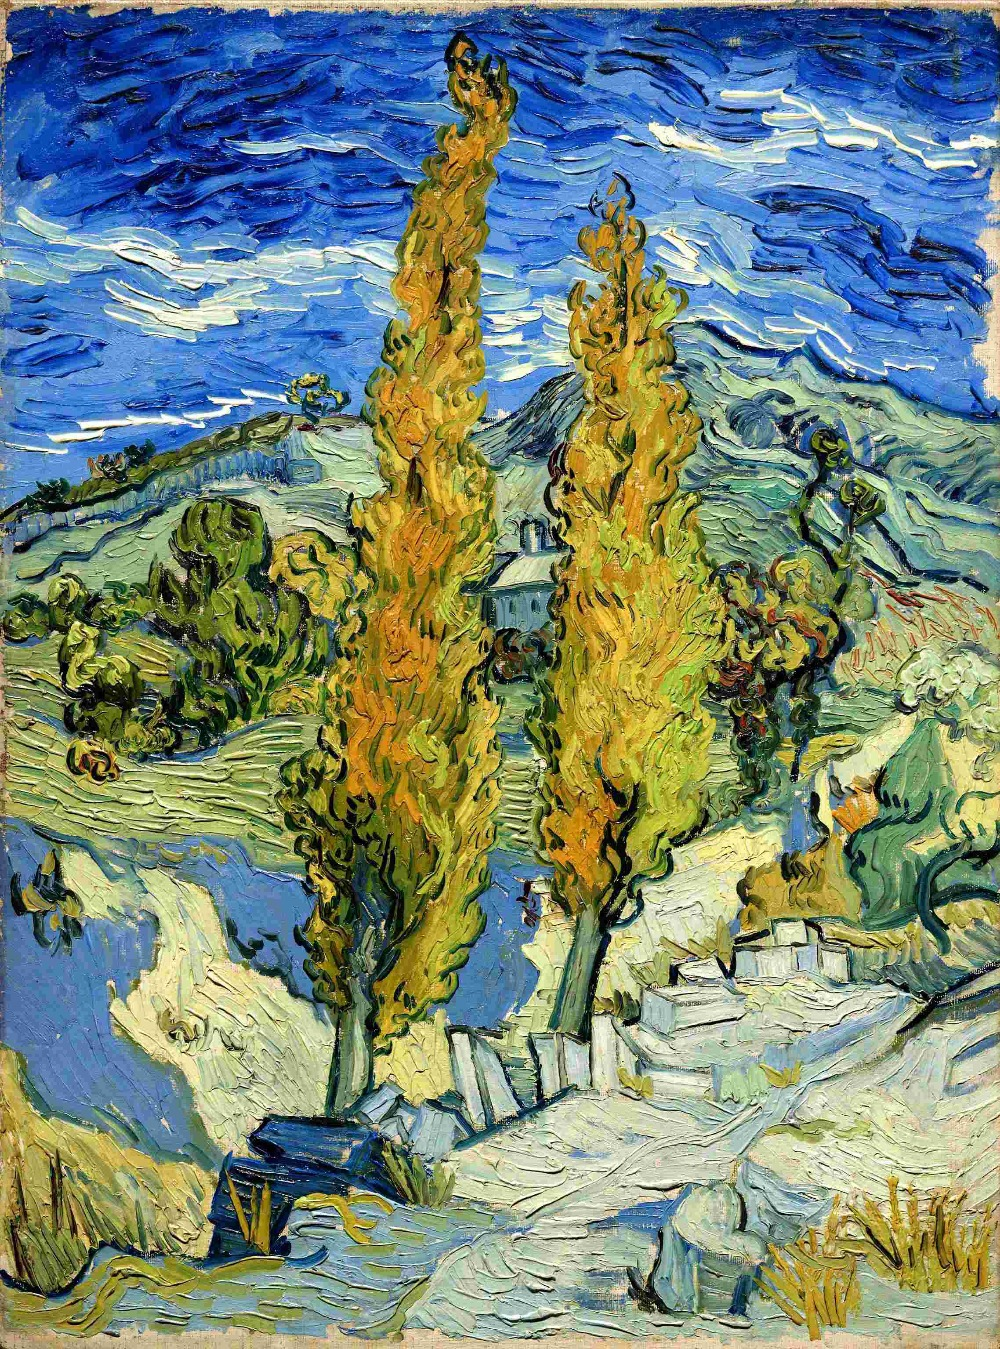 Cuadros De Vangoh Us 14 43 2015 Cuadros Decor Vincent Van Gogh Two Trees Oil Painting On Canvas Home Decoration For Living Room Wall Art Painting In Painting